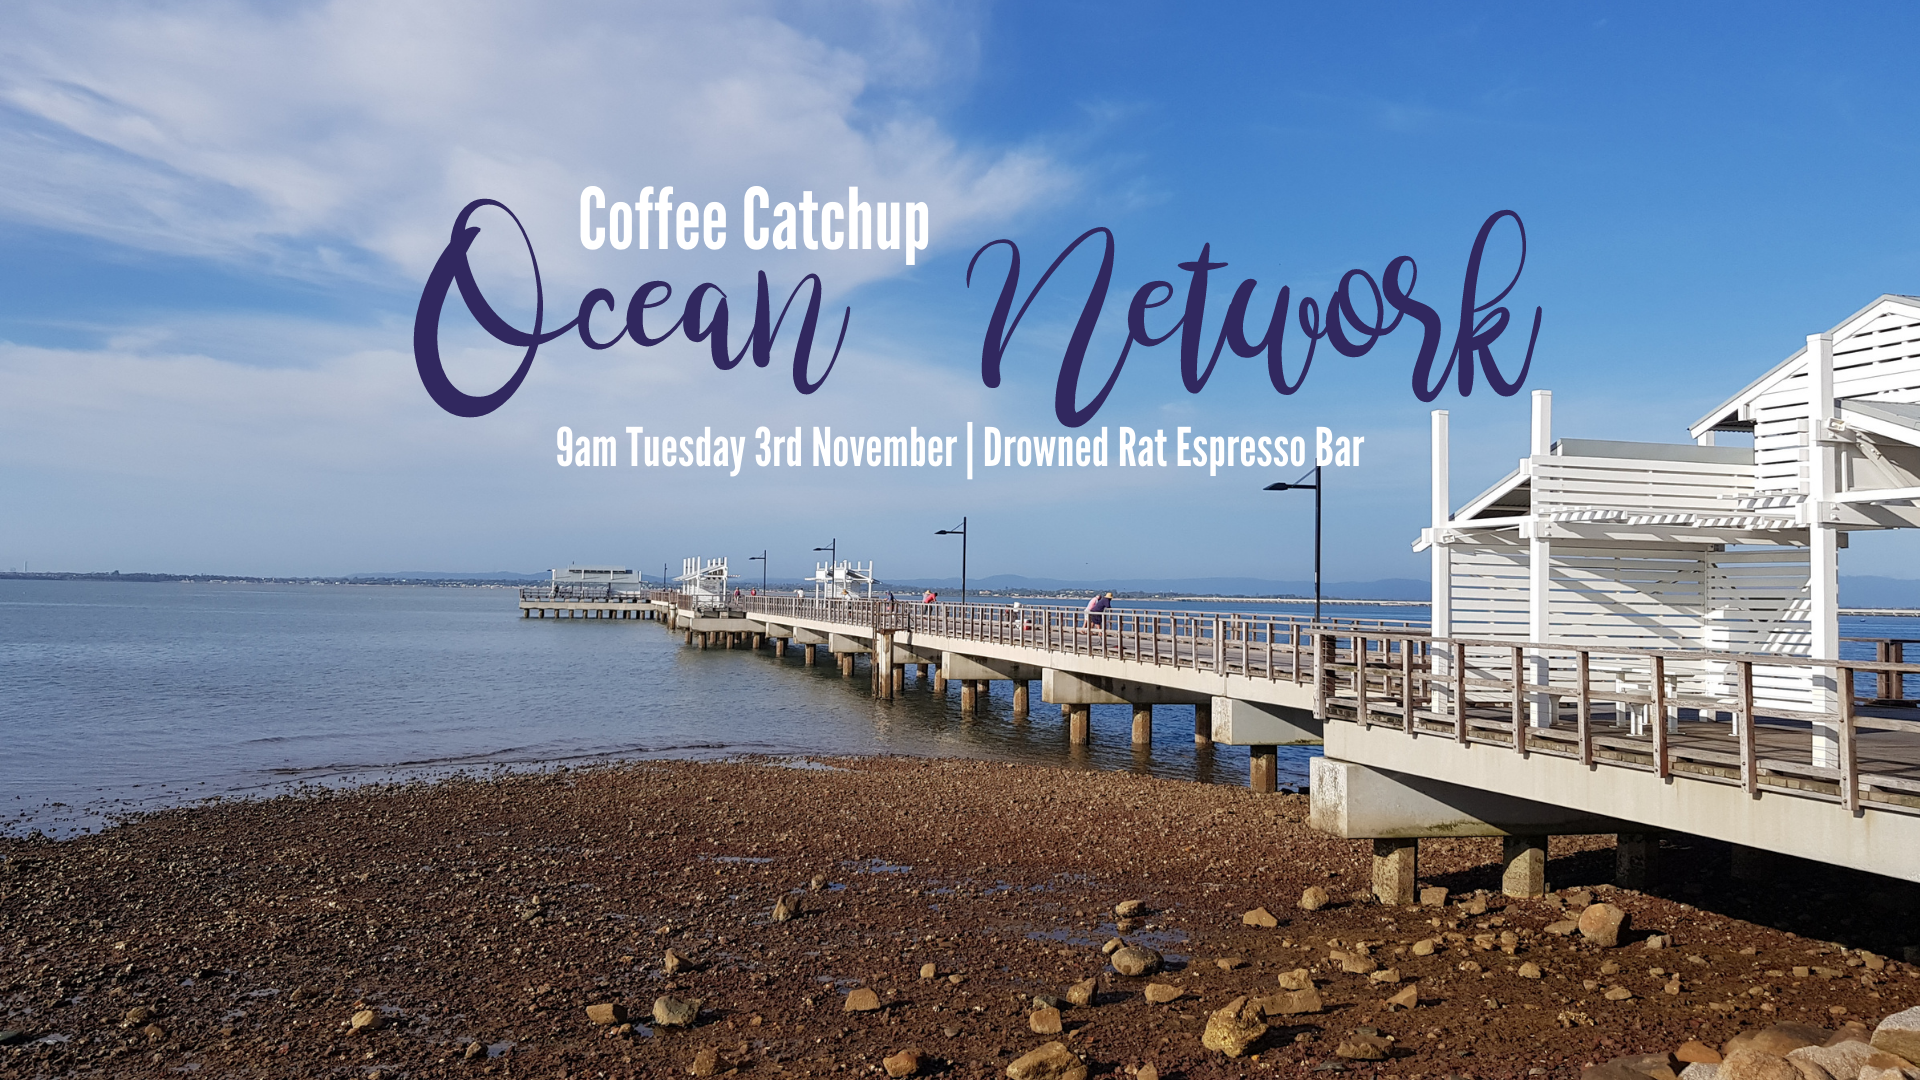 Ocean Network Coffee Catchup